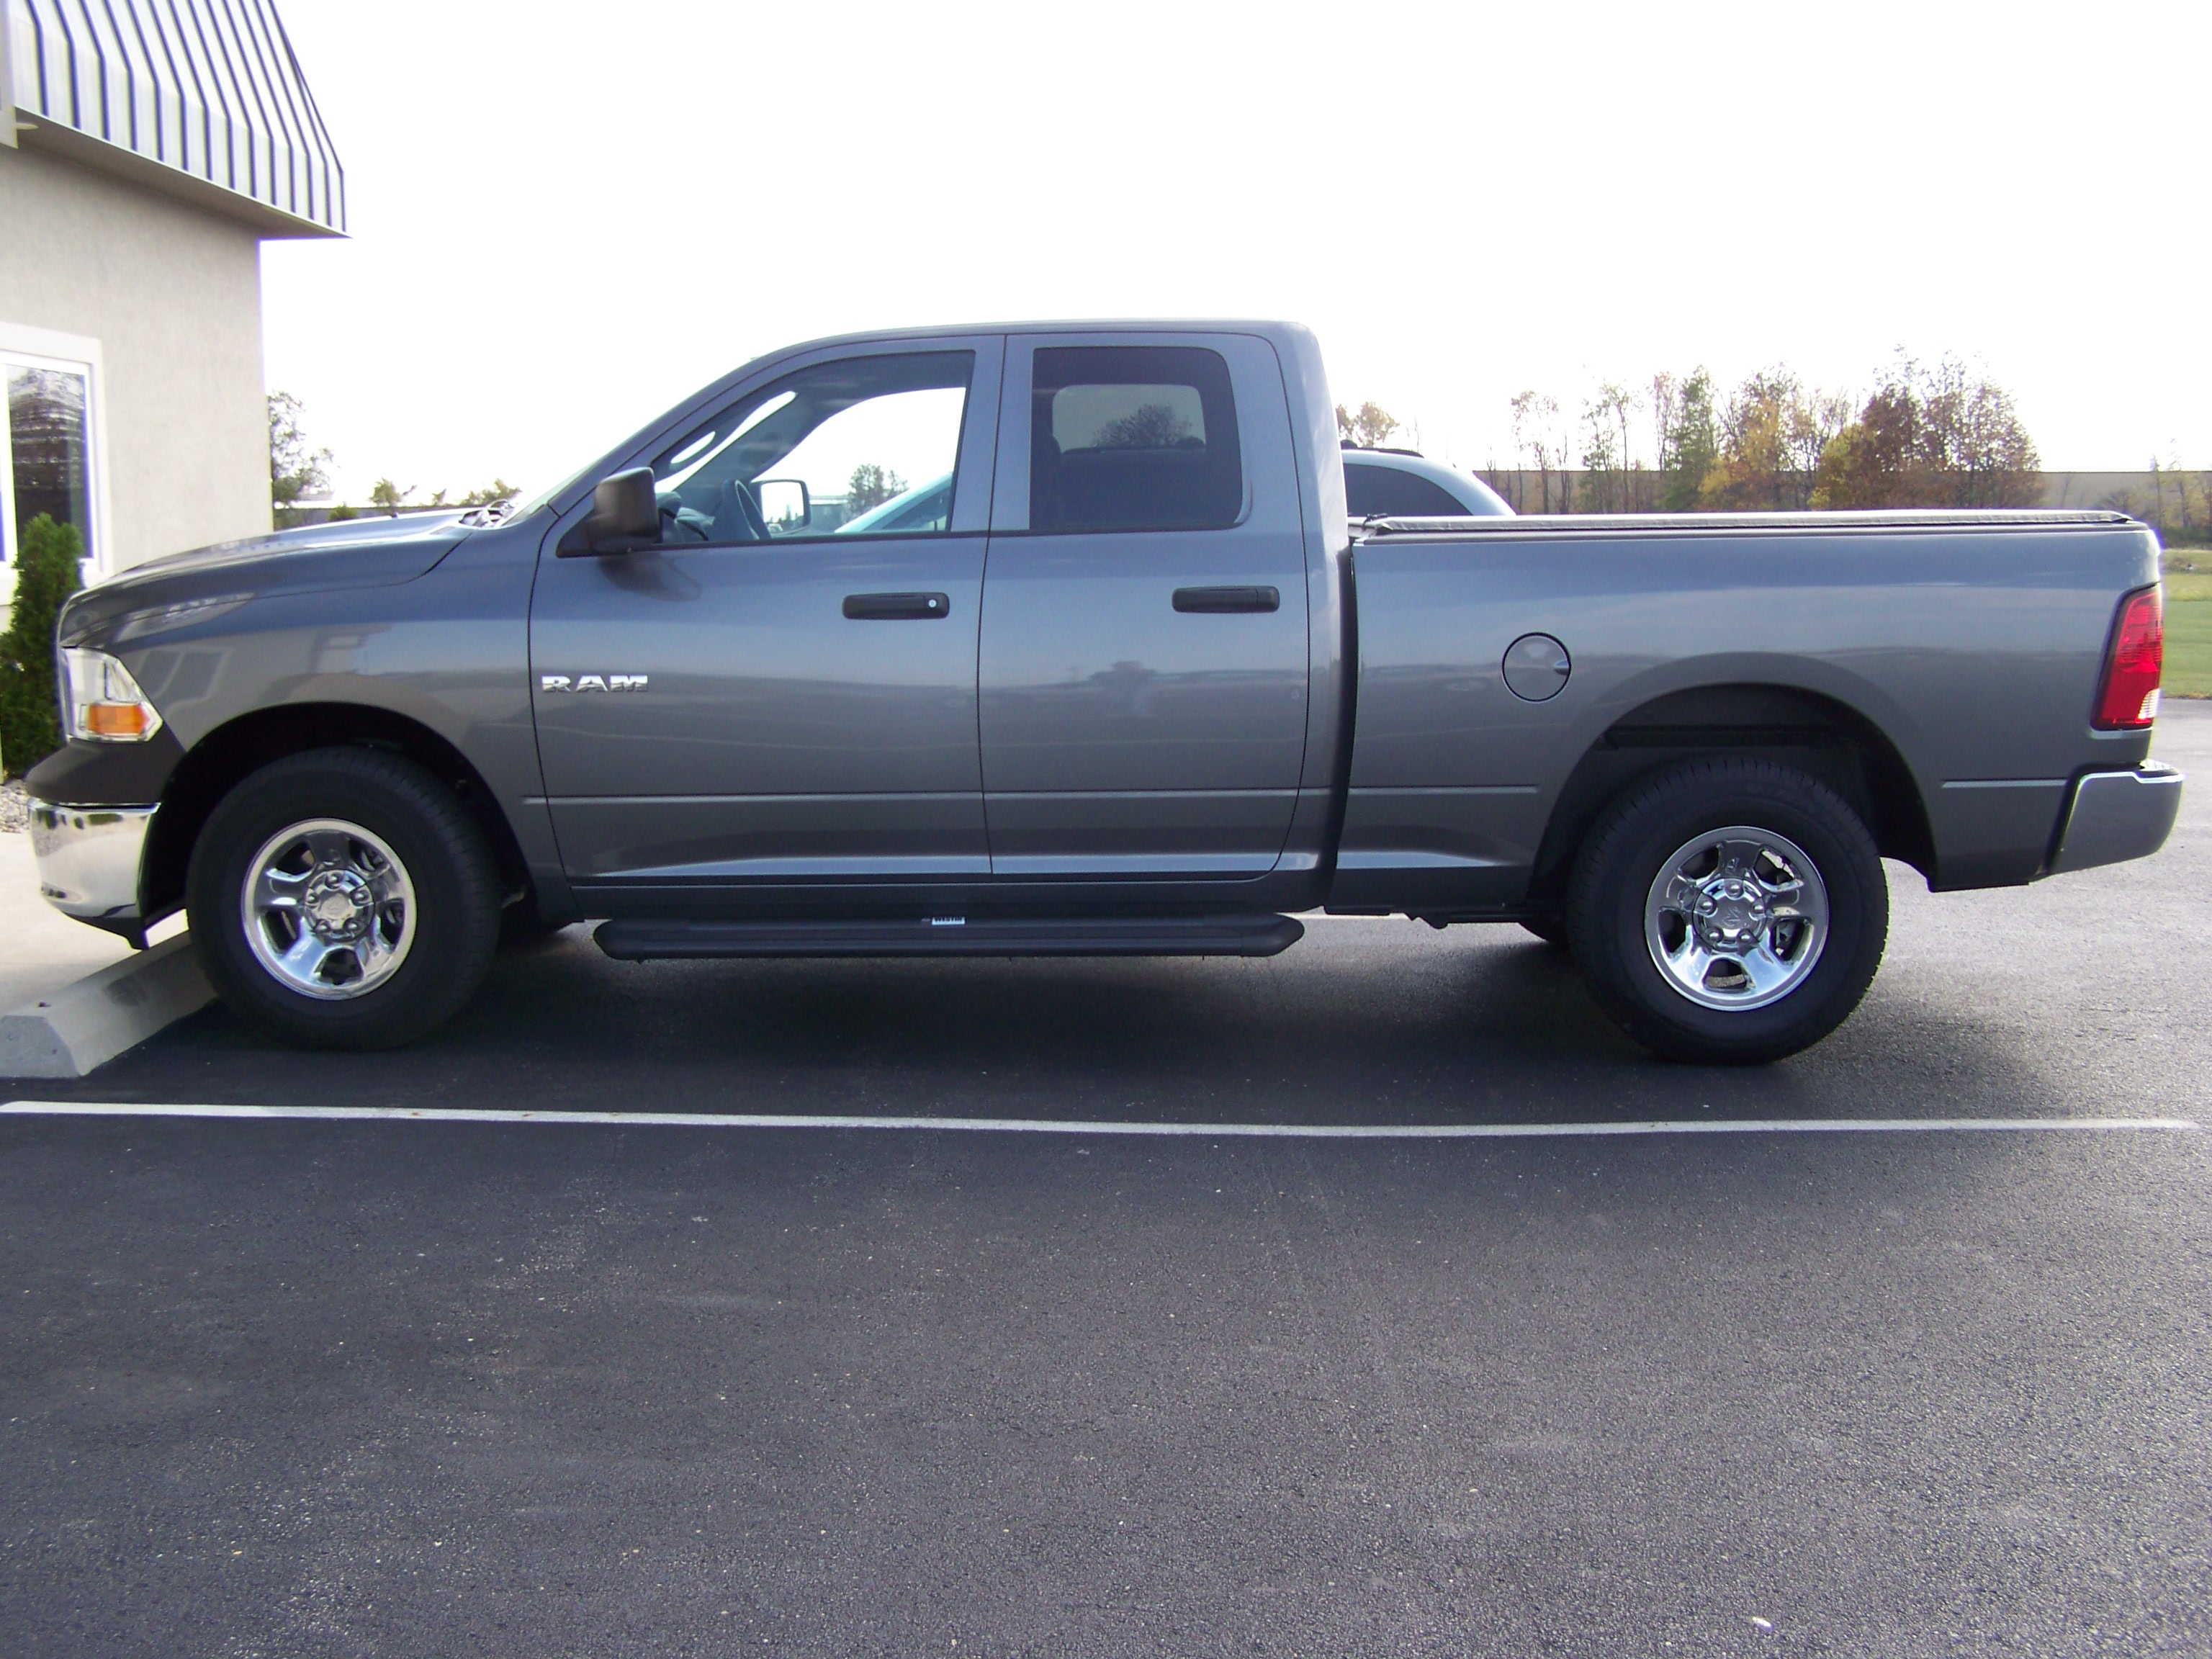 Truck Bumpers For Sale Truck Bumpers Ford F150 Truck